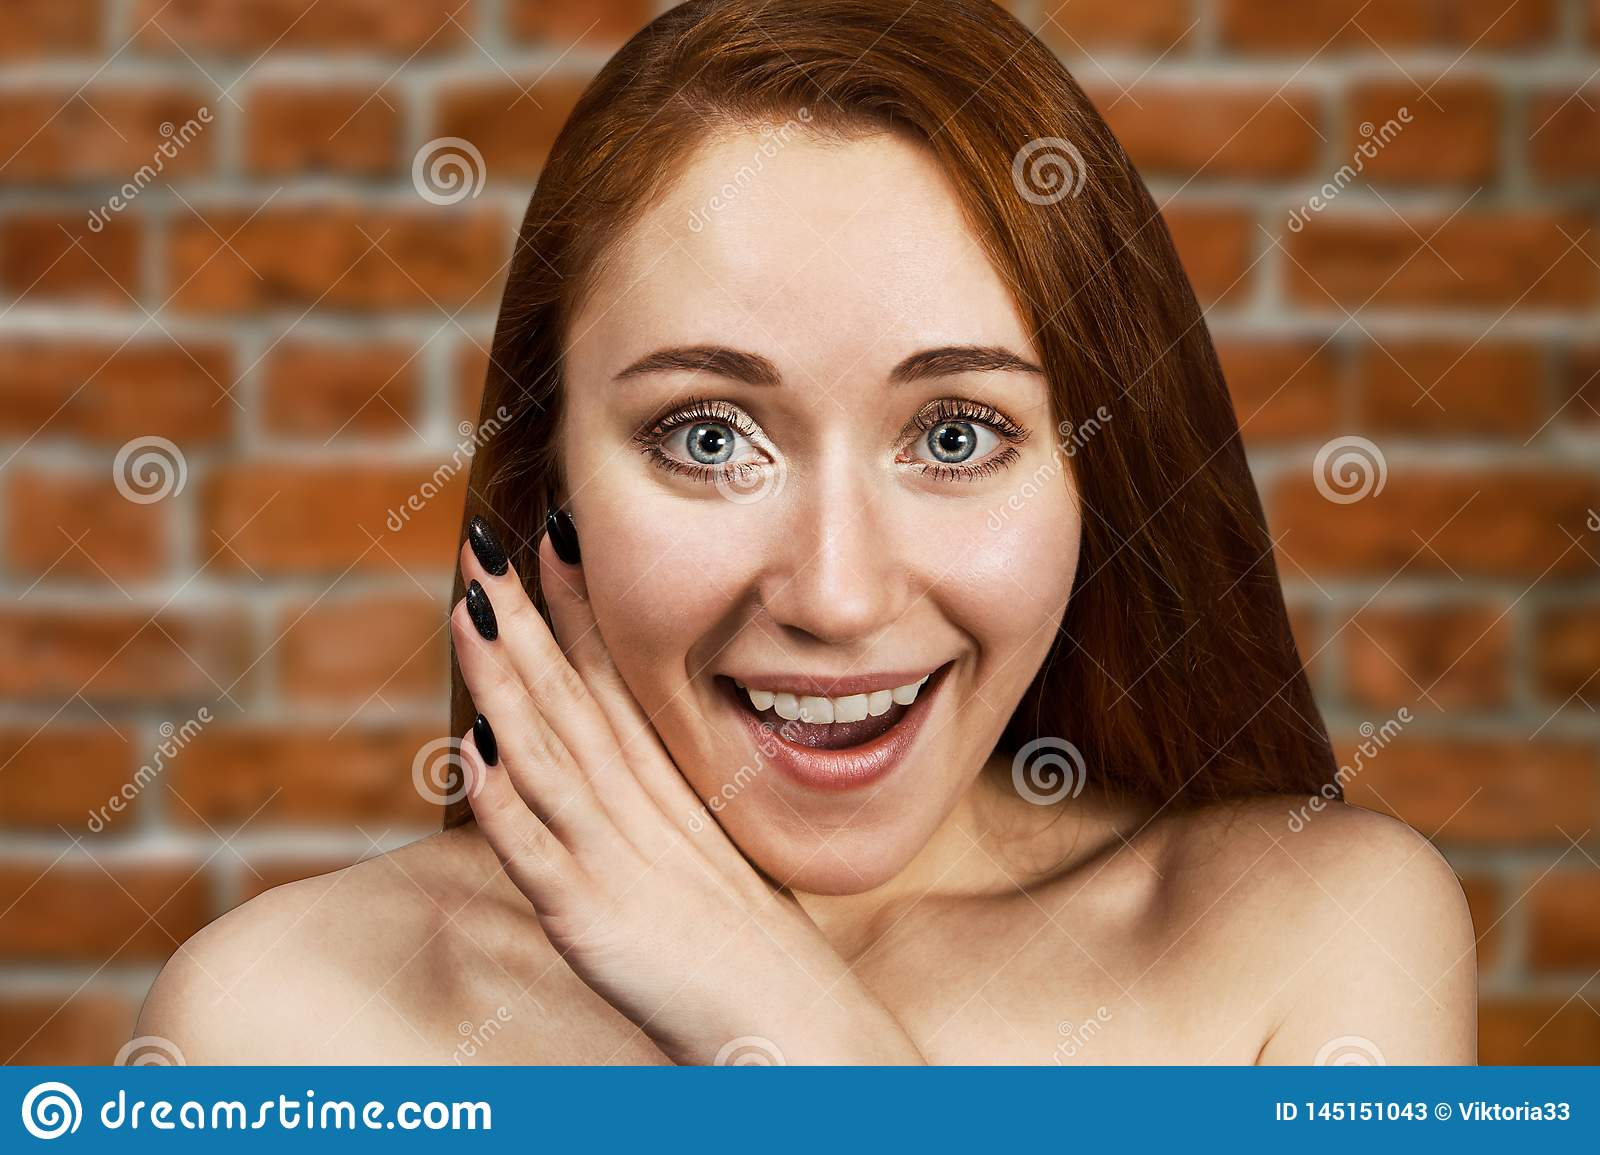 Portrait of a redhead young girl sharing a secret and gossip with her mouth open